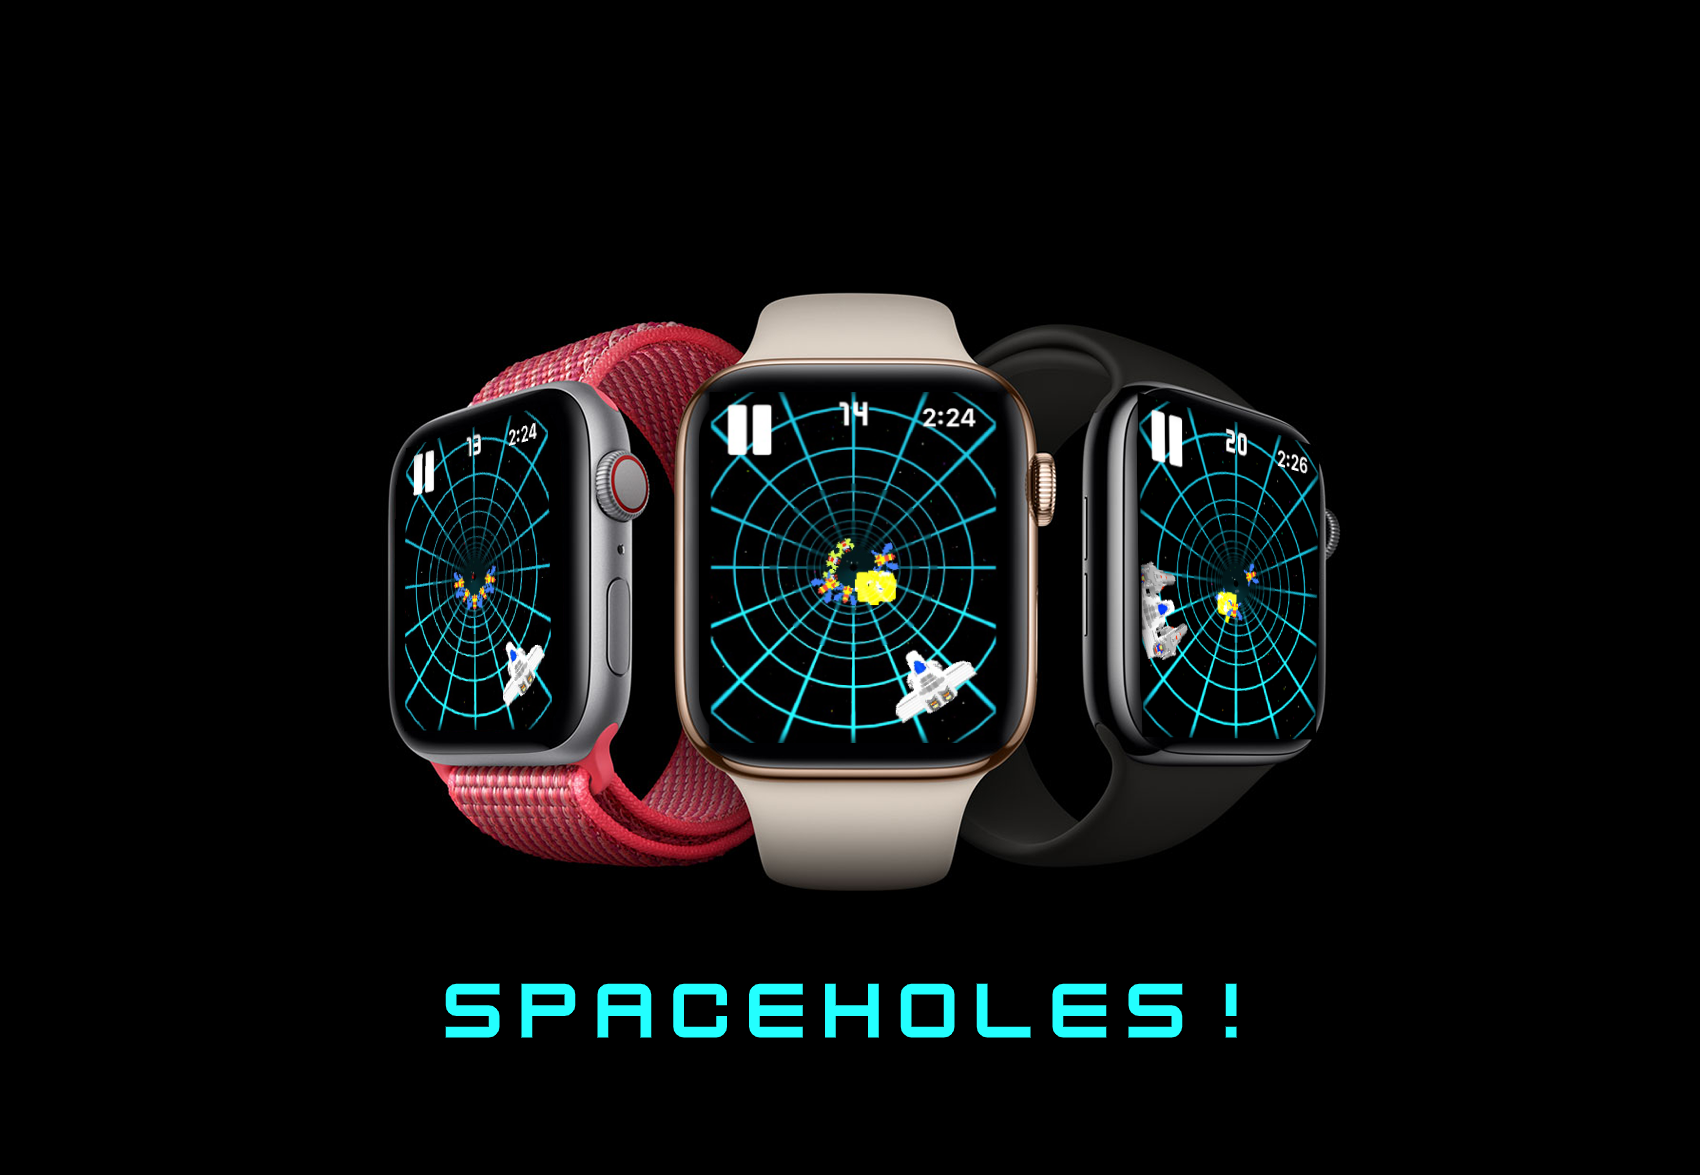 Spaceholes・Watchlabor